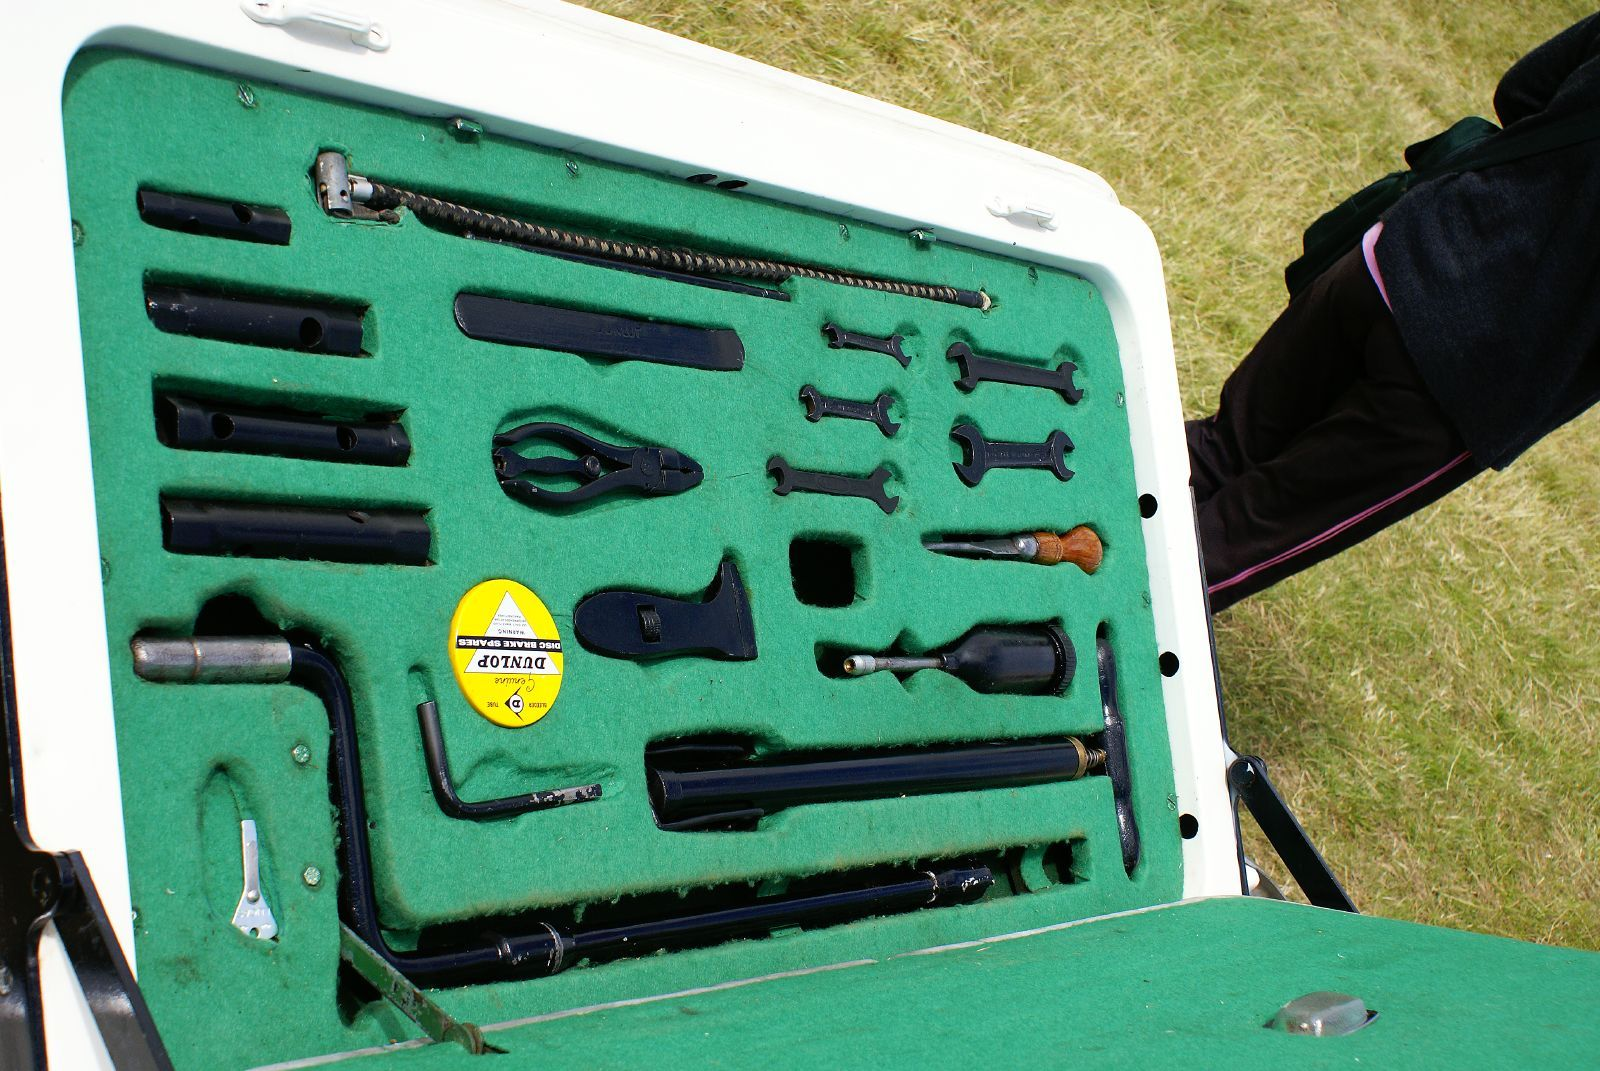 jaguar mark v tool kit - Google Search | Jaguar Mk5 | Pinterest